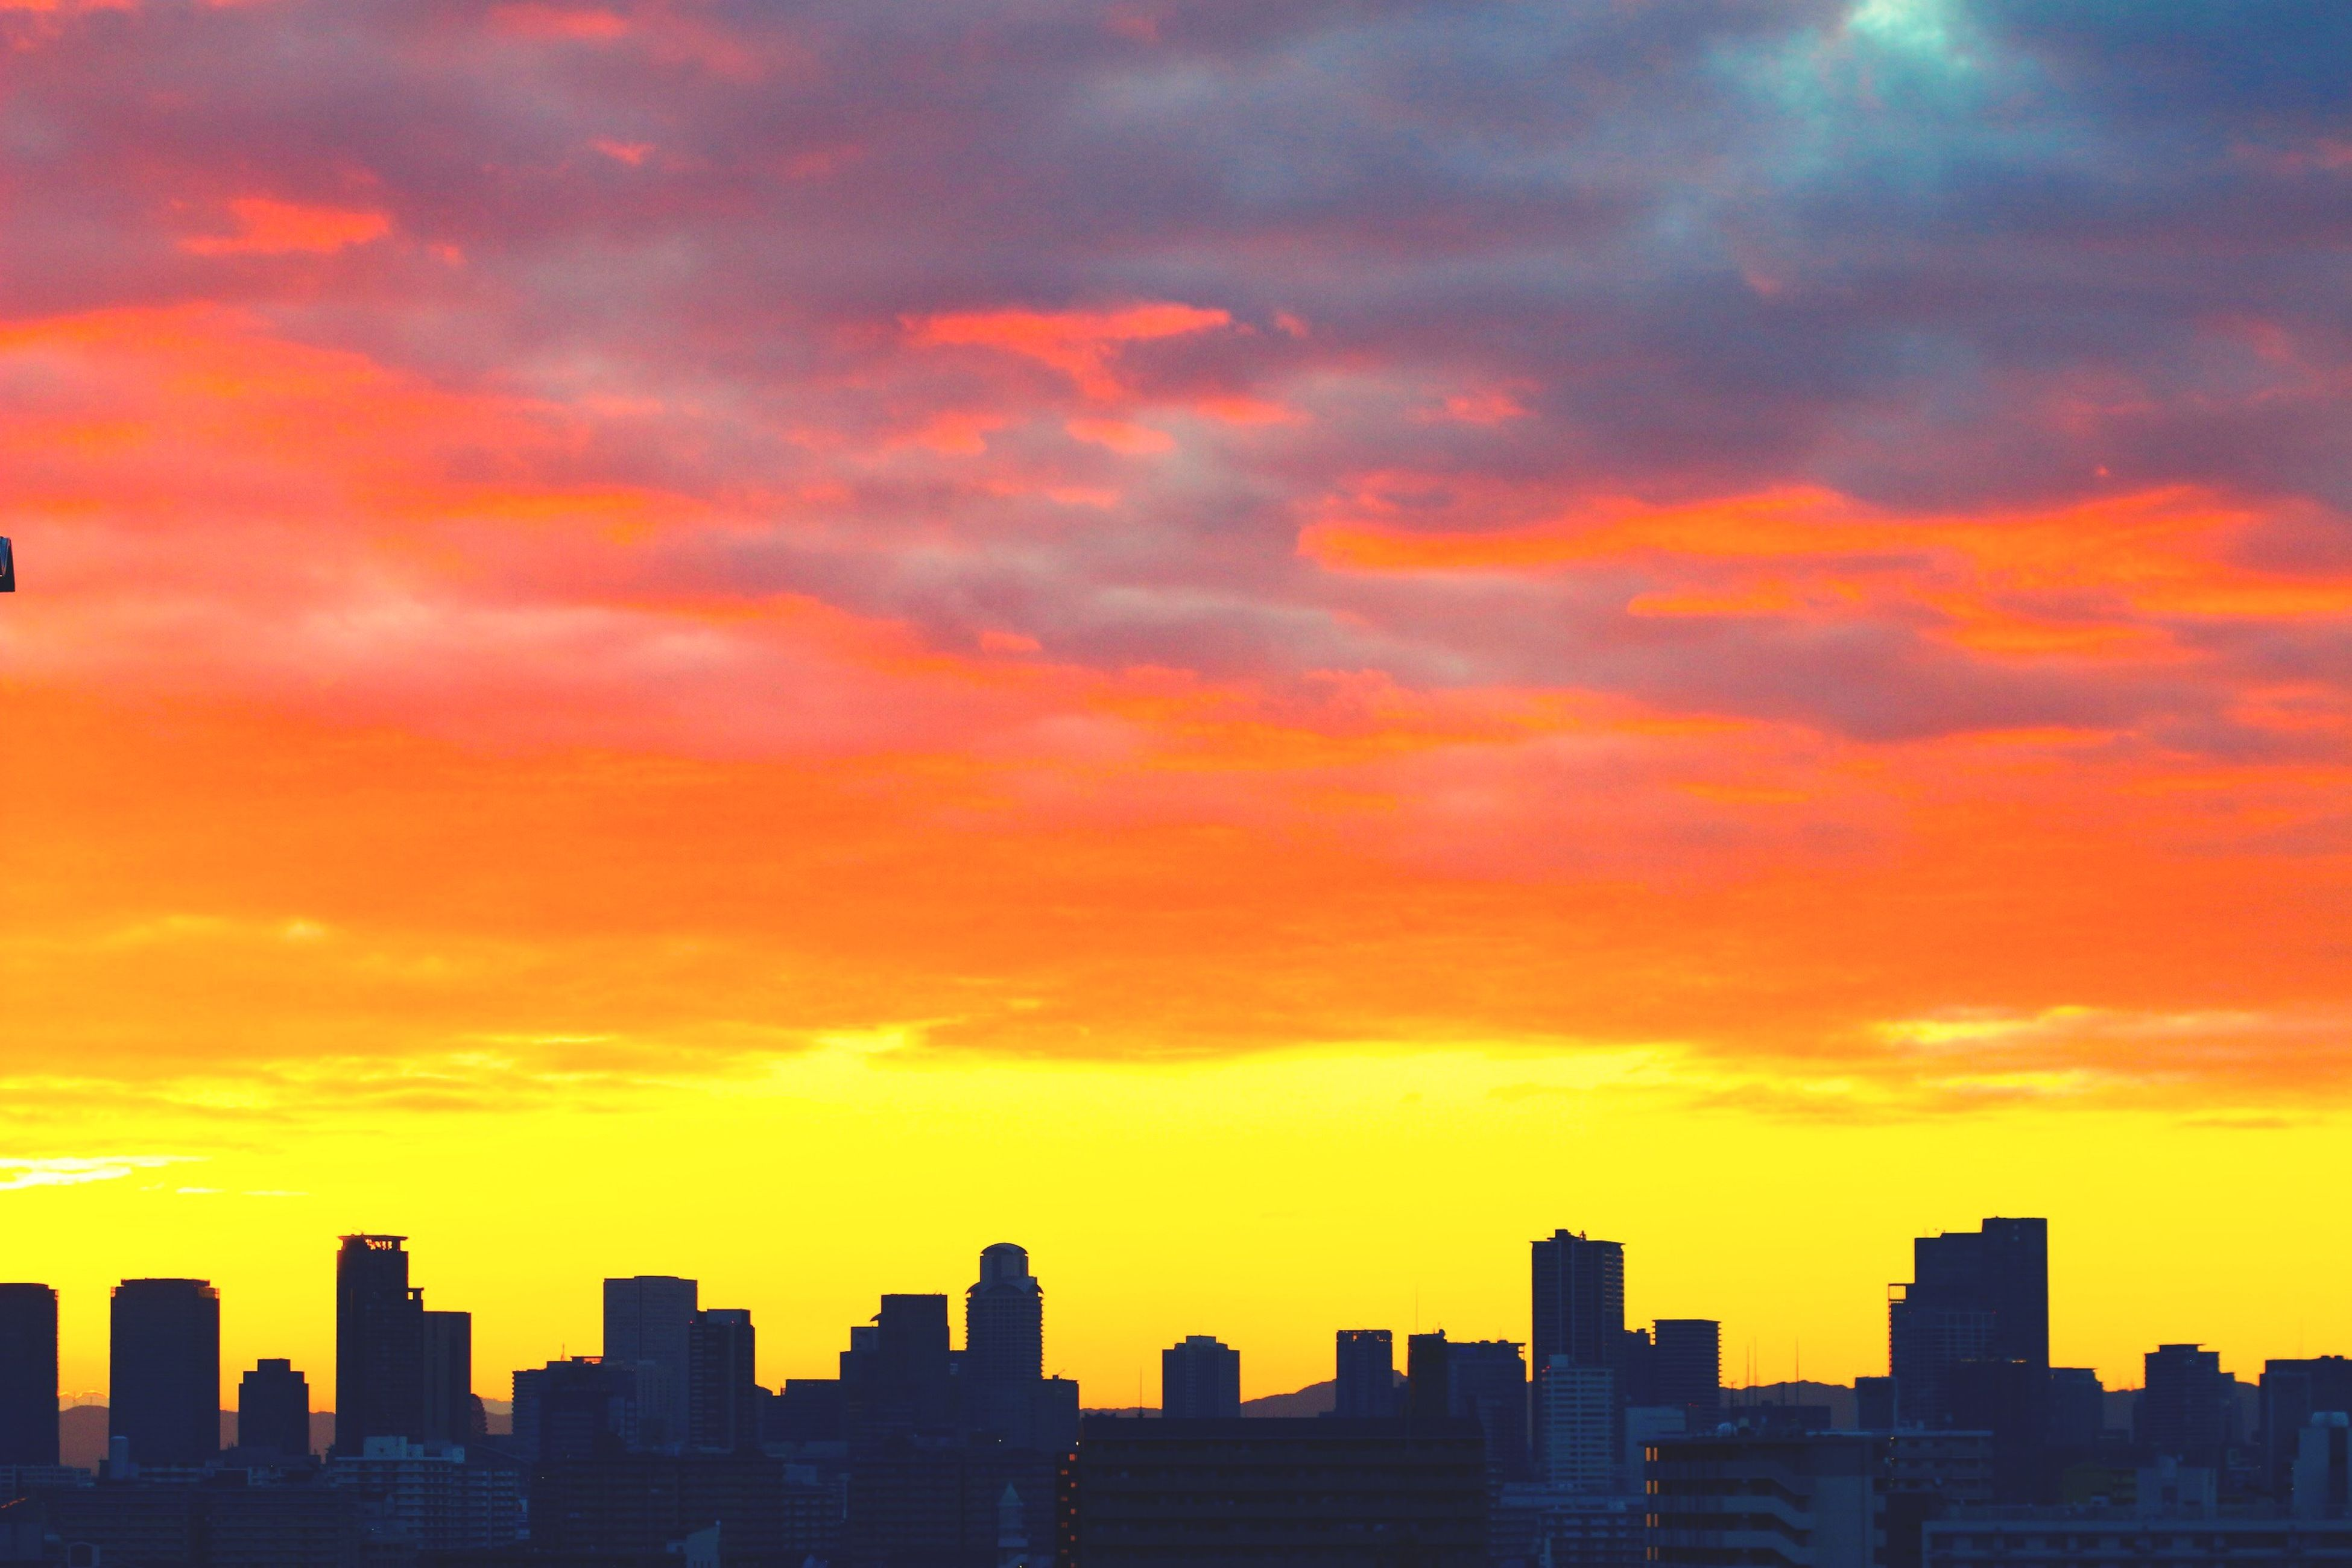 sunset, building exterior, architecture, city, built structure, orange color, cityscape, sky, skyscraper, silhouette, cloud - sky, urban skyline, skyline, cloud, tower, scenics, tall - high, dramatic sky, beauty in nature, building